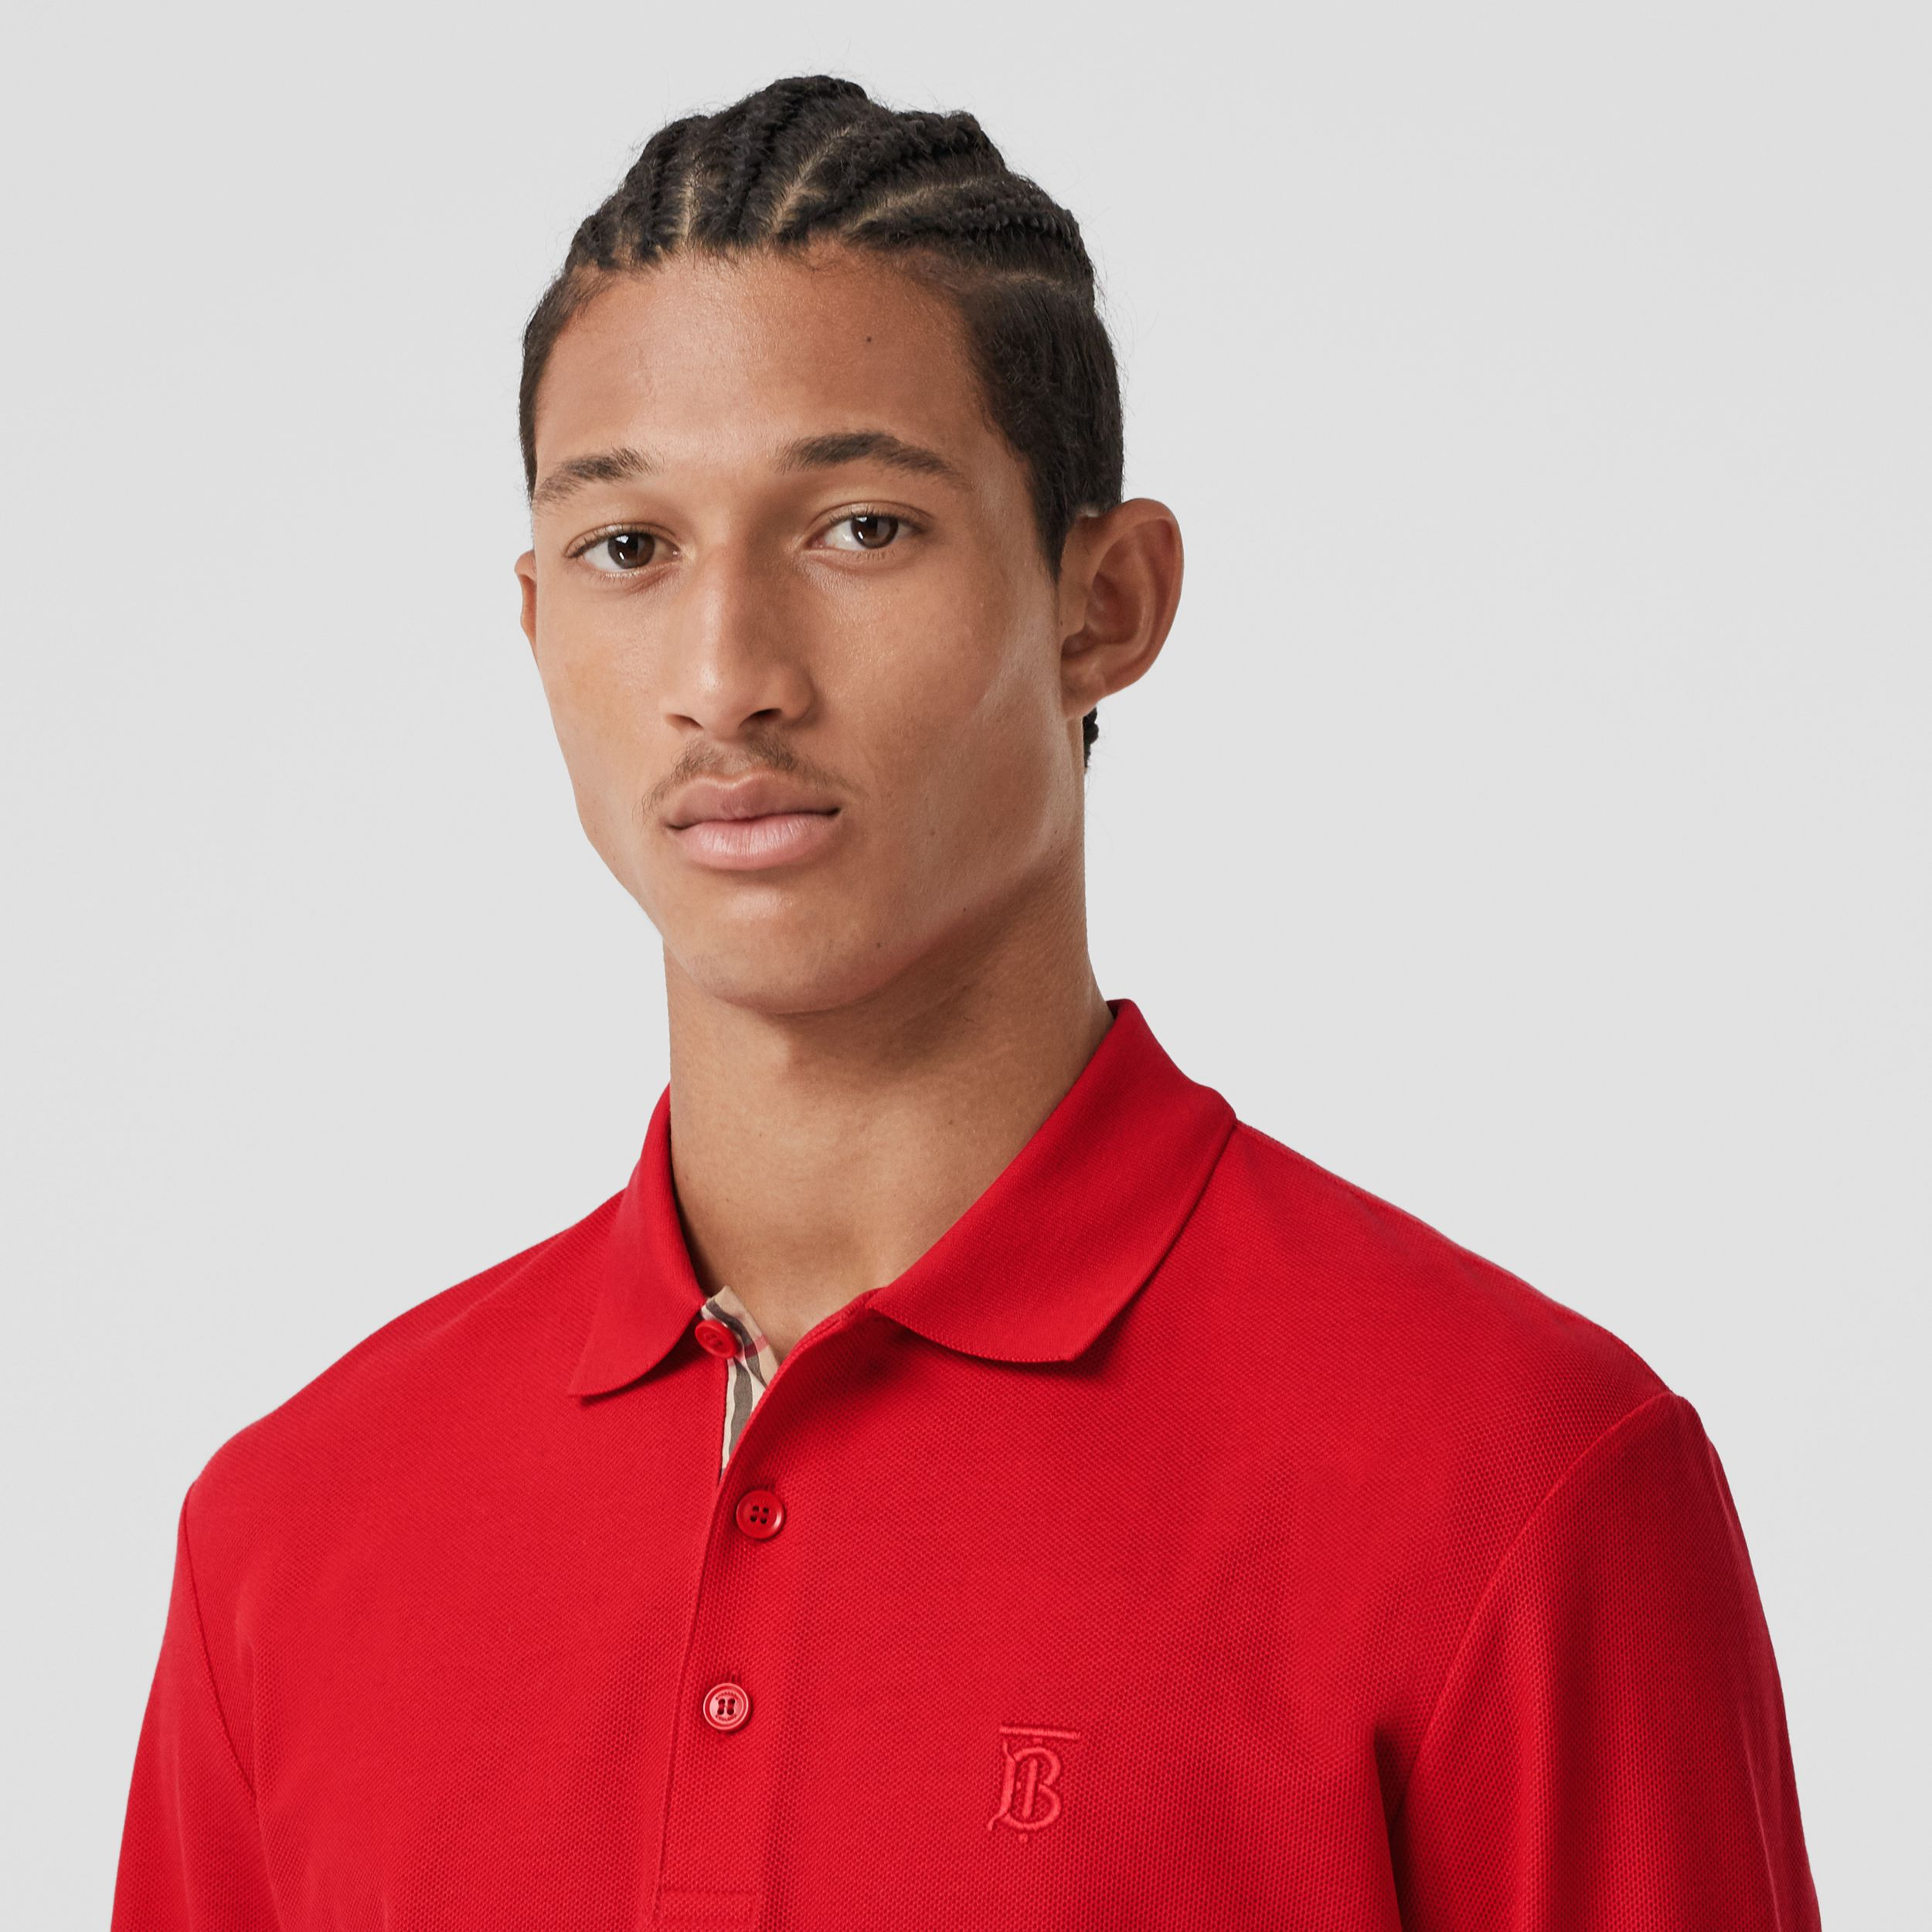 Long-sleeve Monogram Motif Cotton Piqué Polo Shirt in Bright Red - Men | Burberry - 2